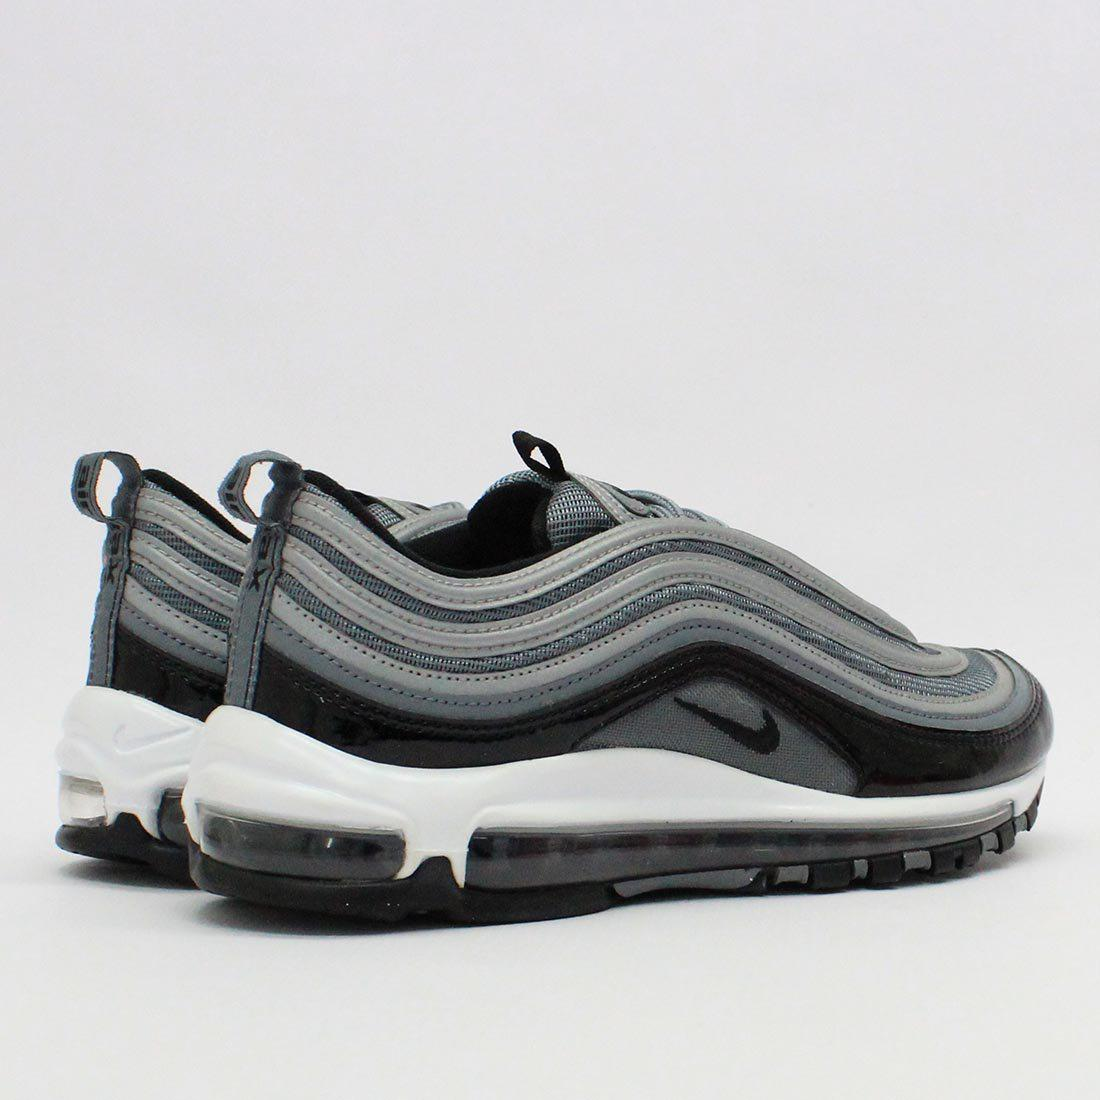 Nike Trainers Nike Air Max 97 Cool Grey 921826 010 in Gray for Men ... 4a26b9e5a9ea